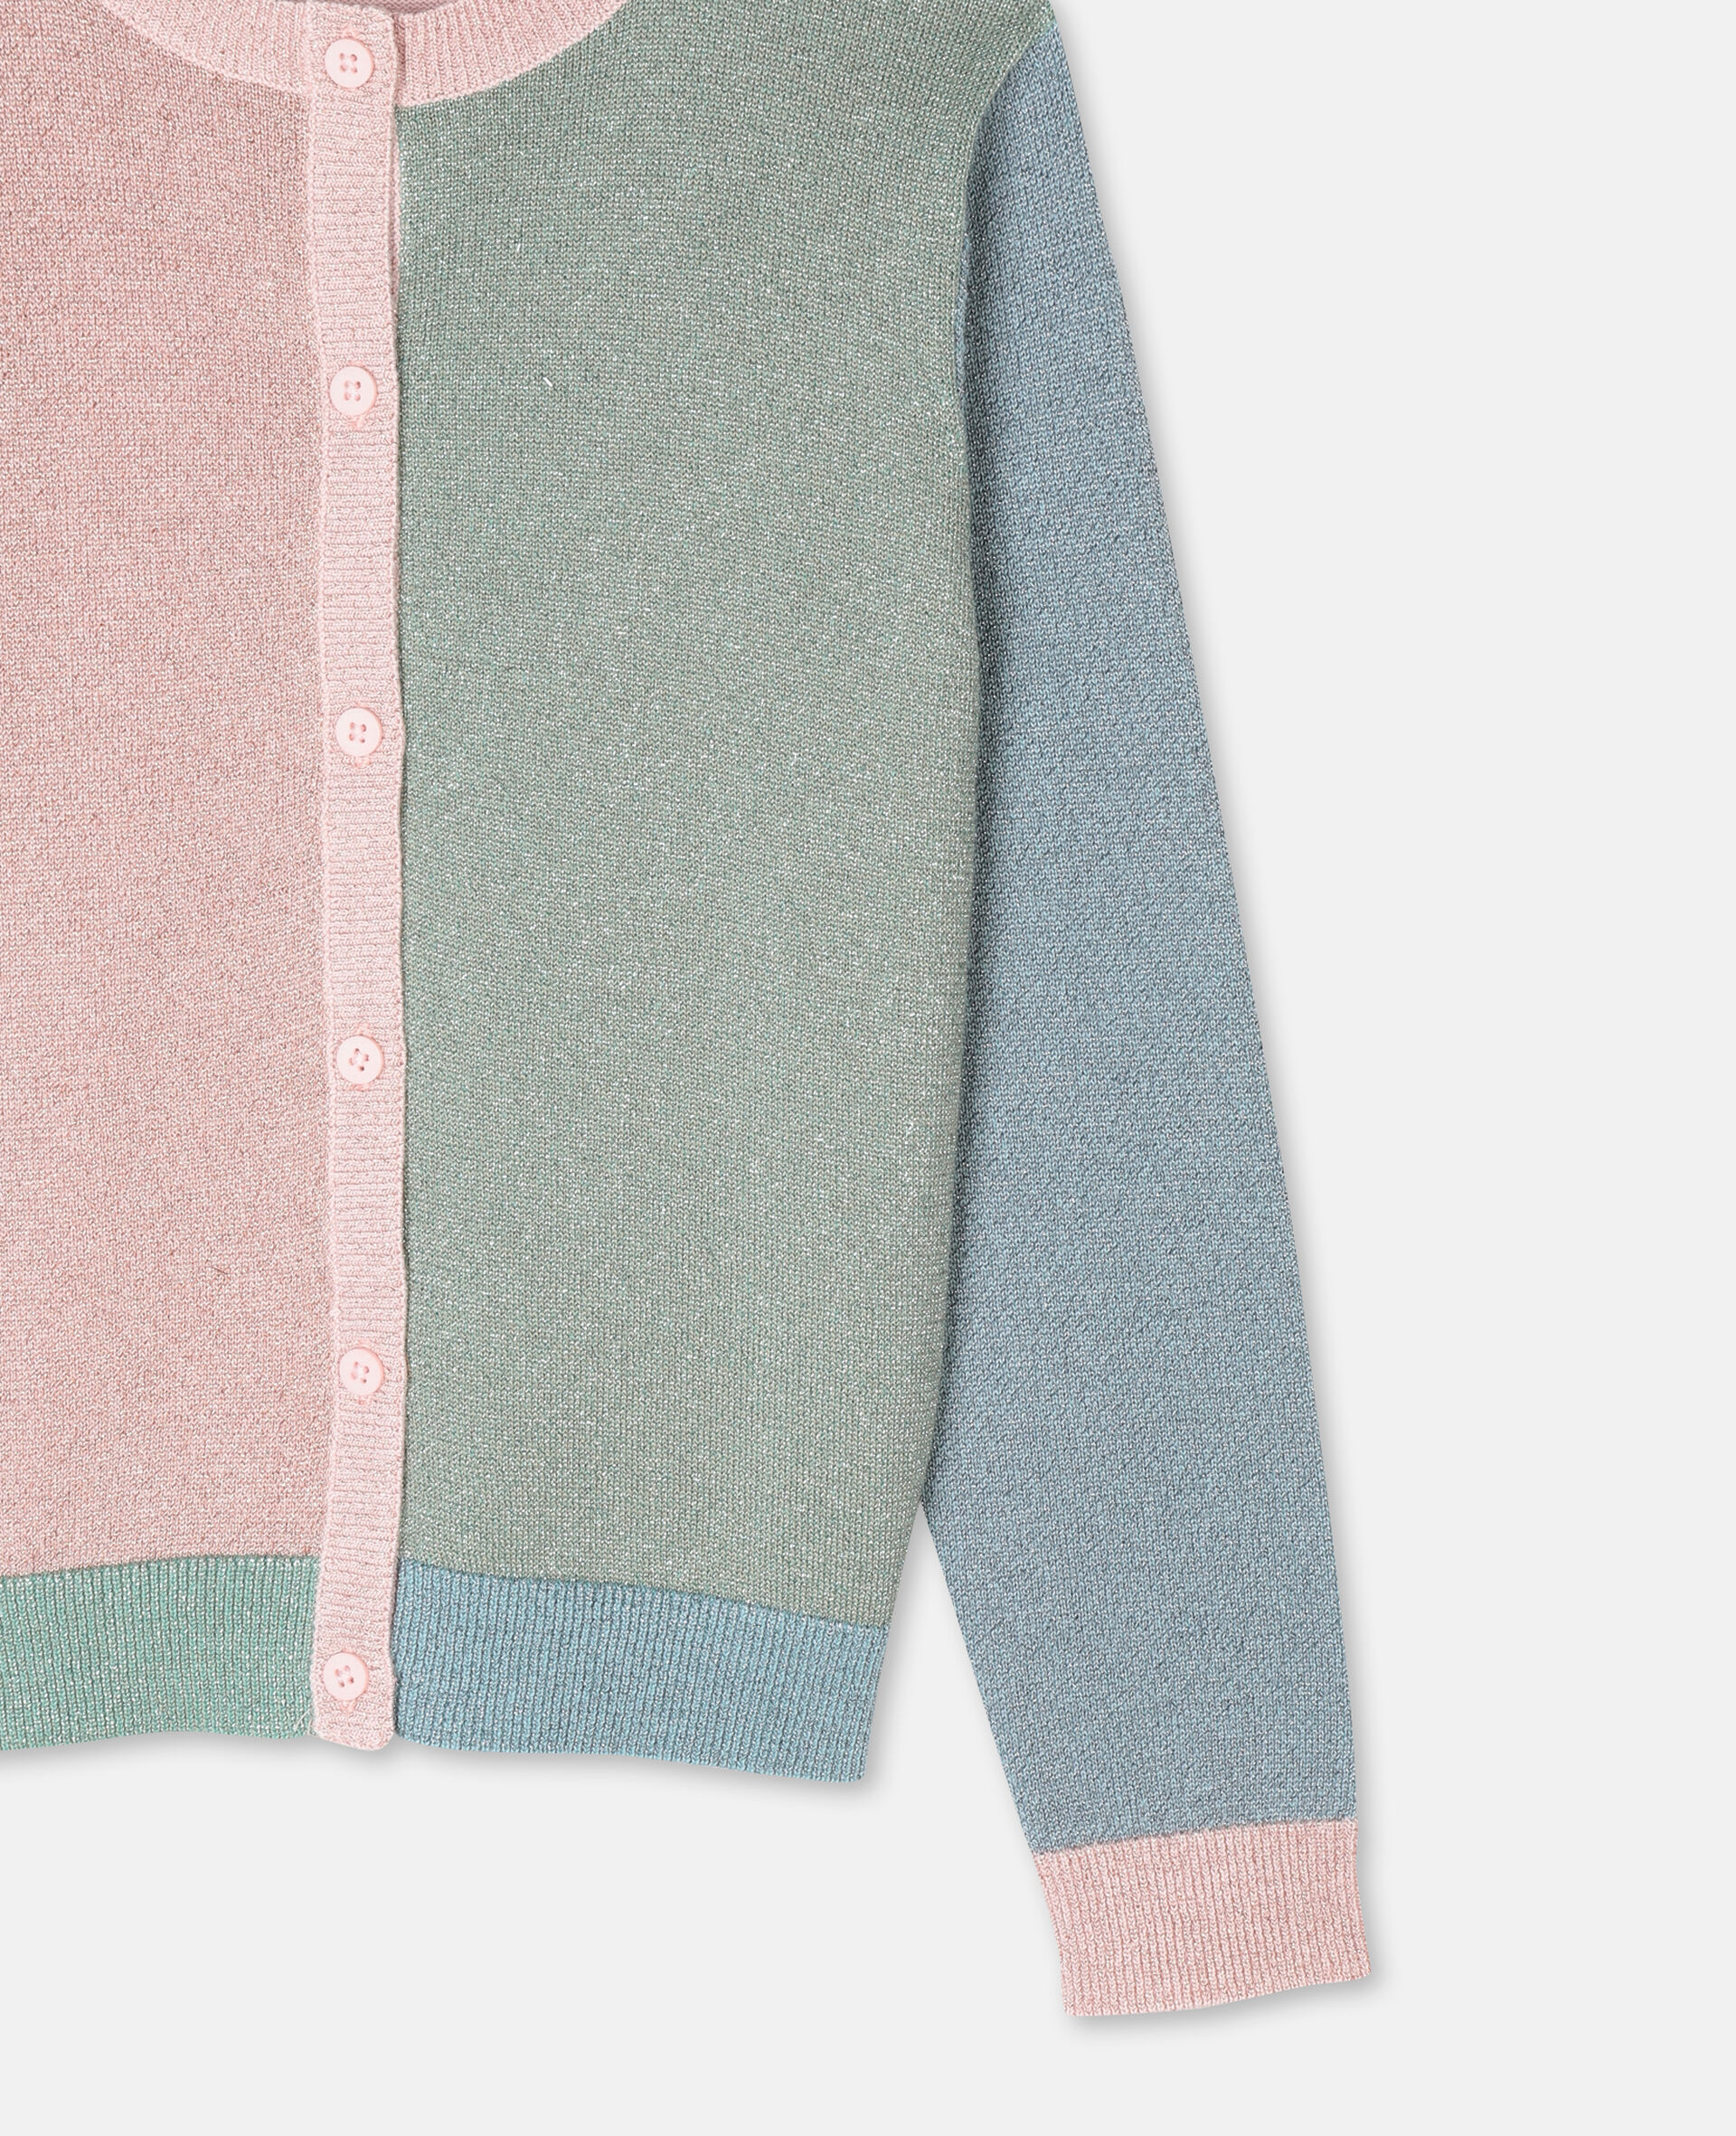 Multicolour Knit Cardigan -Pink-large image number 1